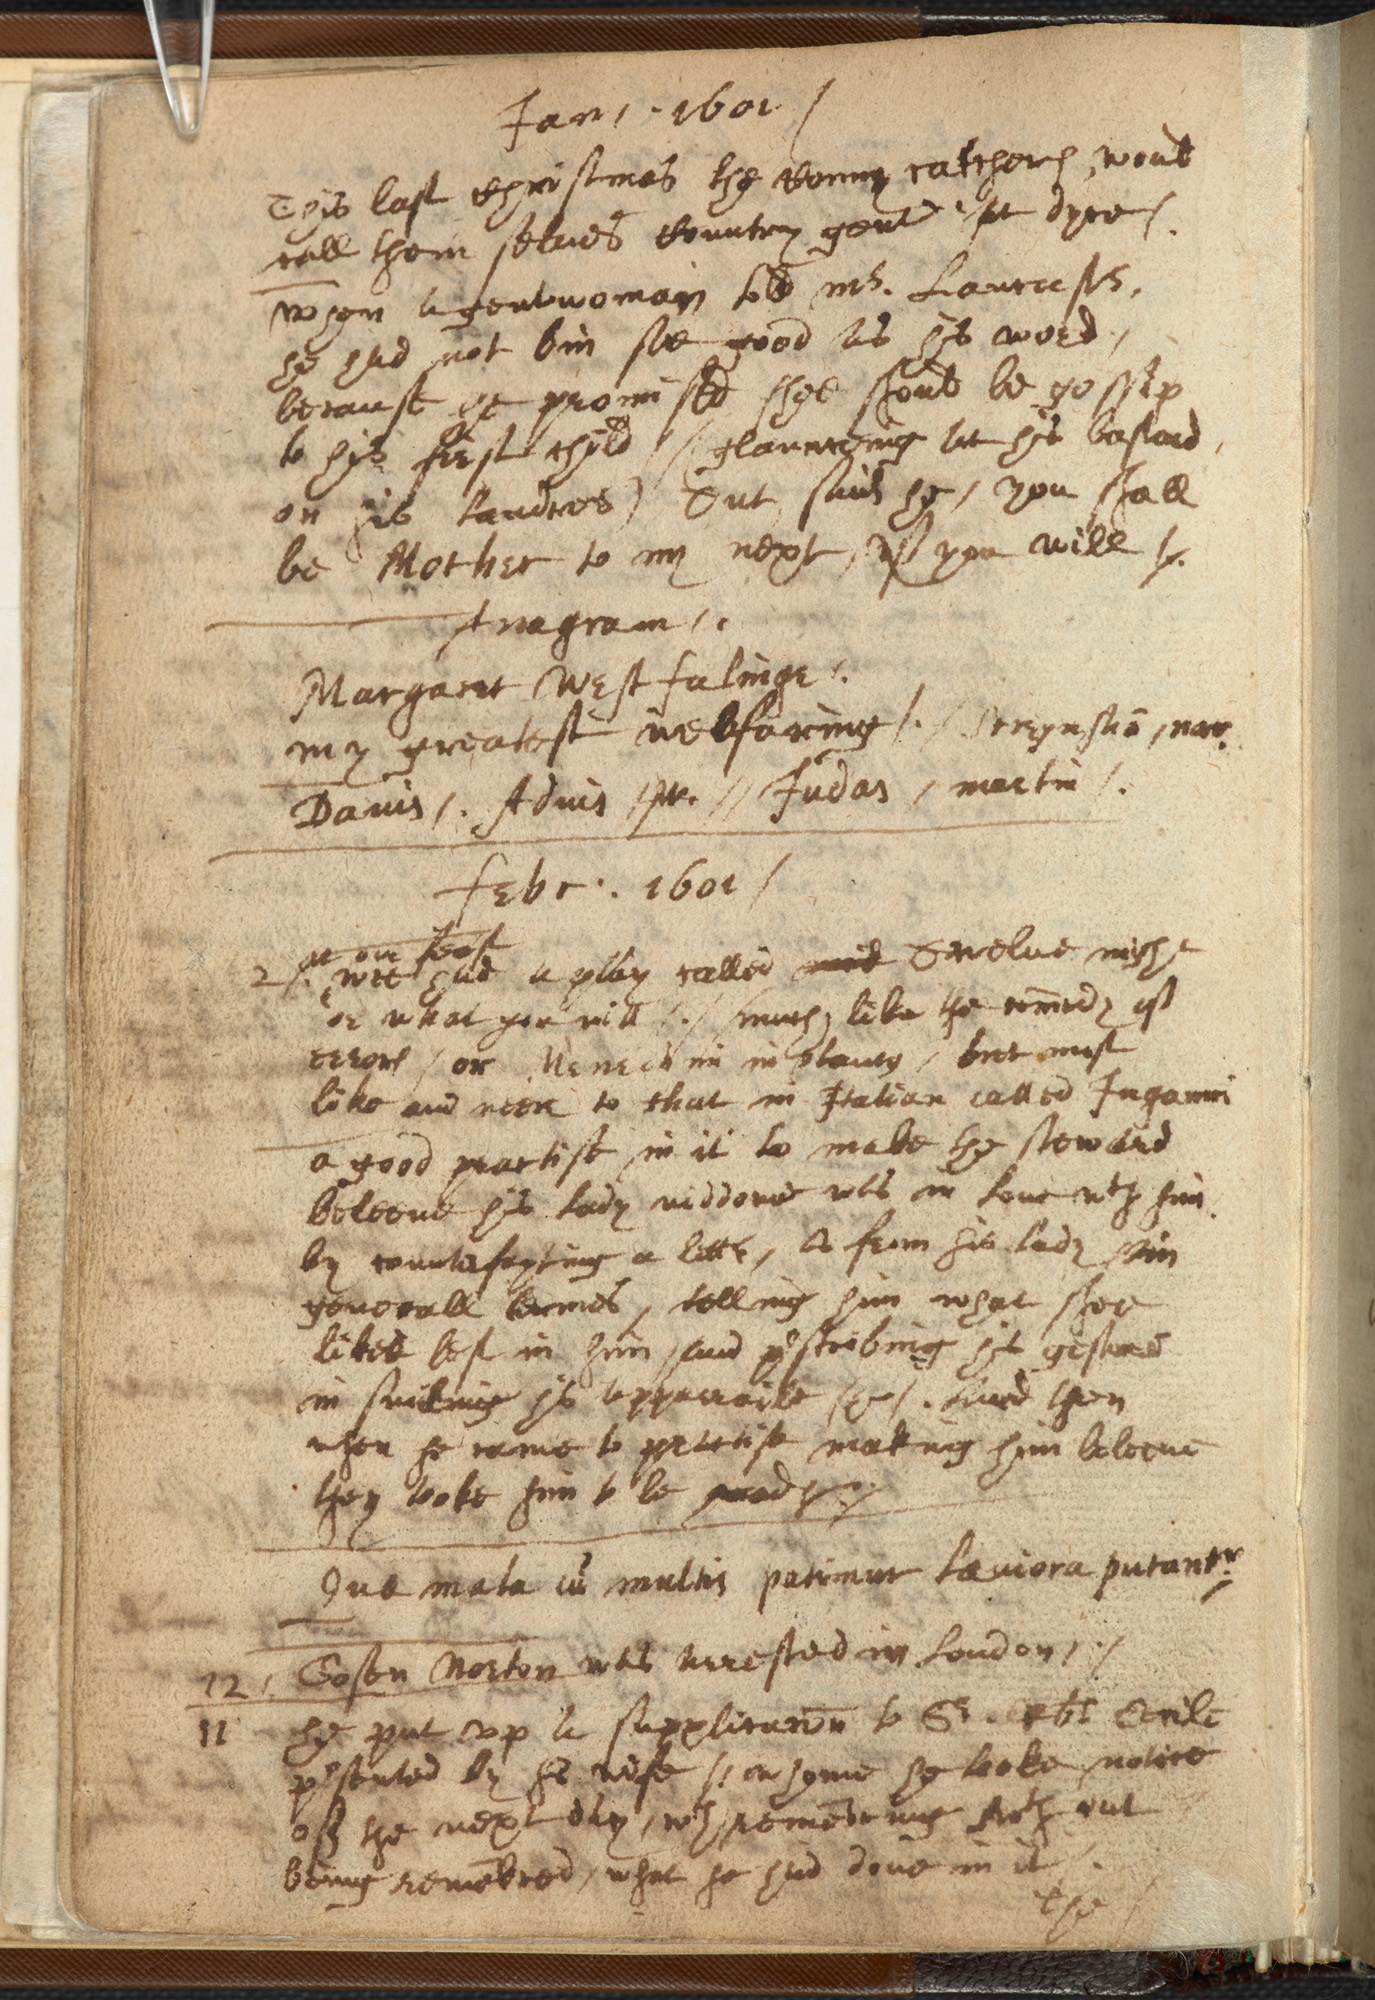 The festival of Twelfth Night in John Manningham's Diary